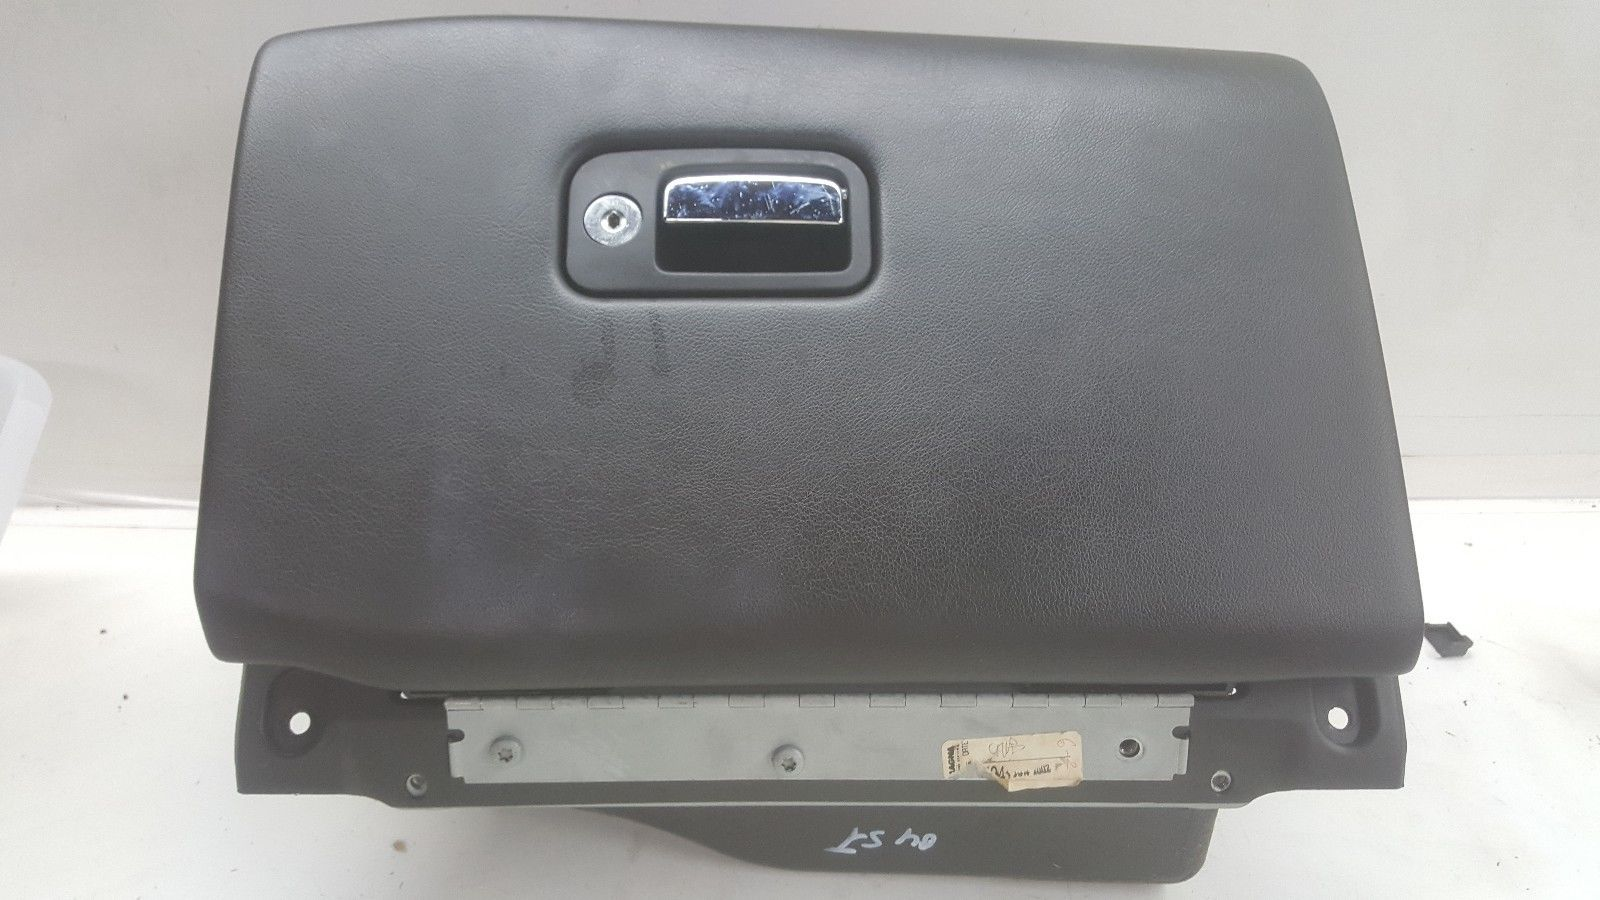 Jaguar S-TYPE GLOVE BOX black 2R83-F045F48-A 2003-2004-2005-2006-2007-2008  2R83-1045F48-A